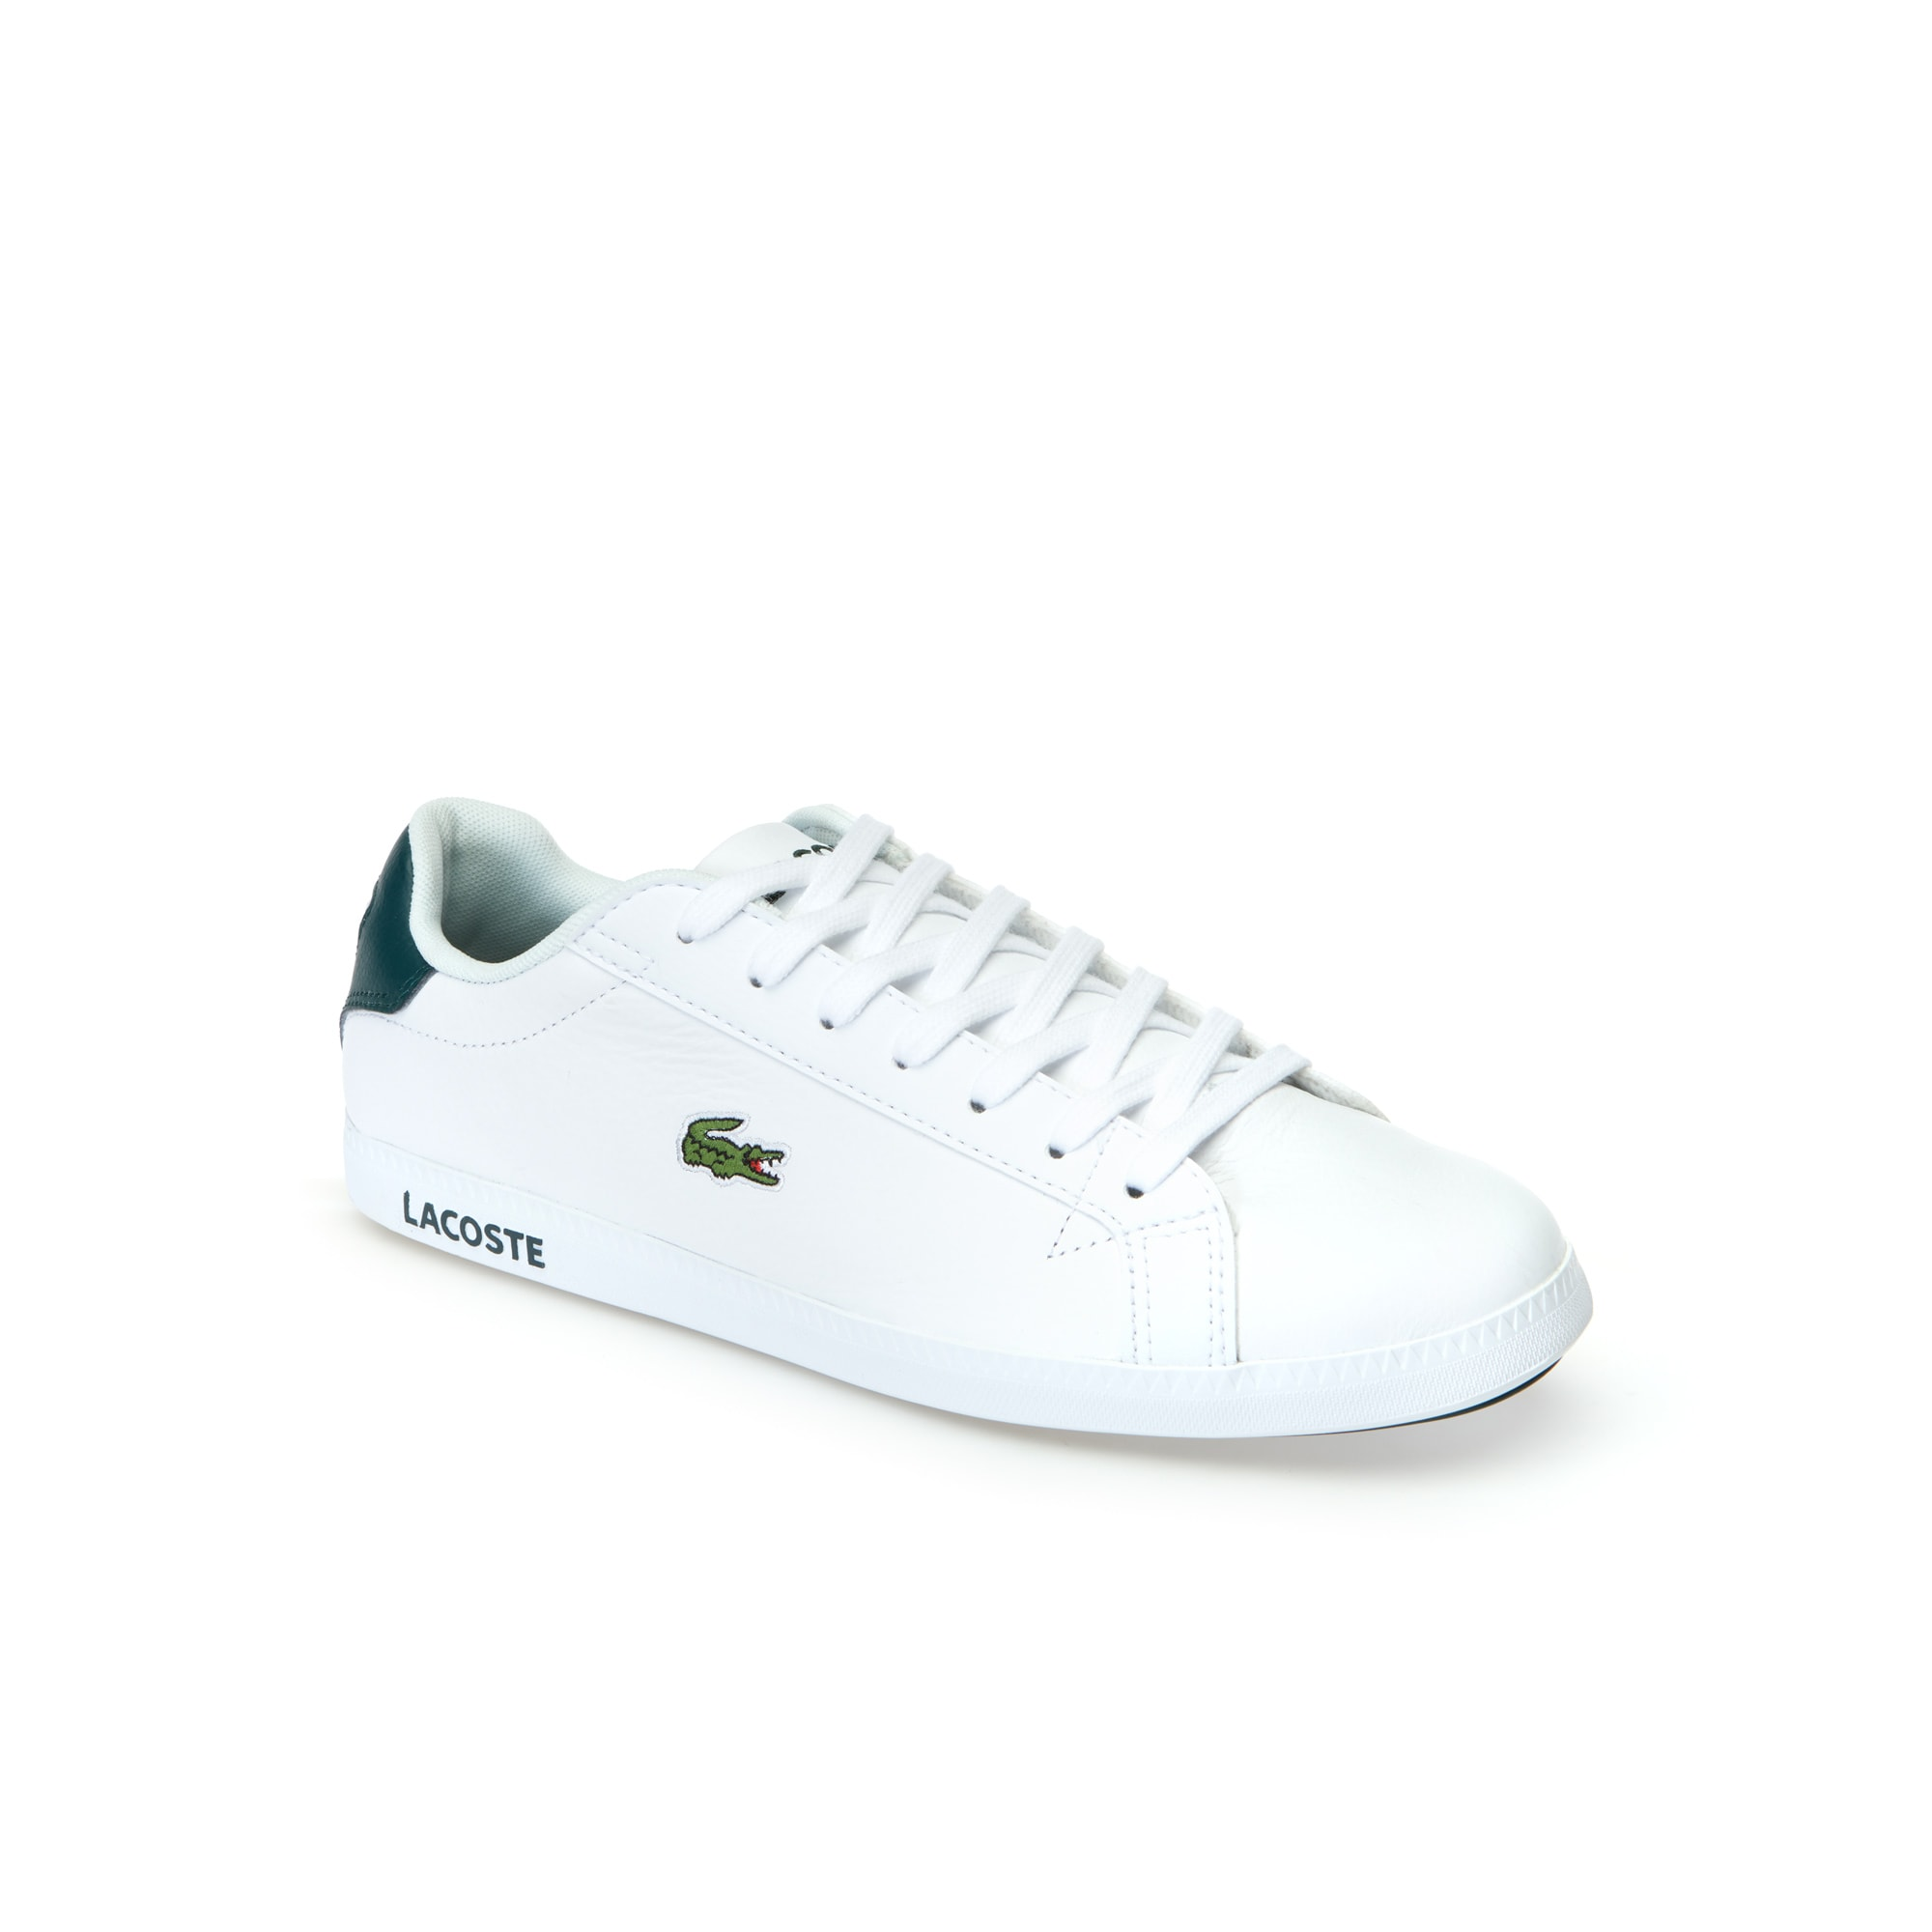 1bea6682c Men graduate leather trainers lacoste jpg 460x460 Lacoste shoe